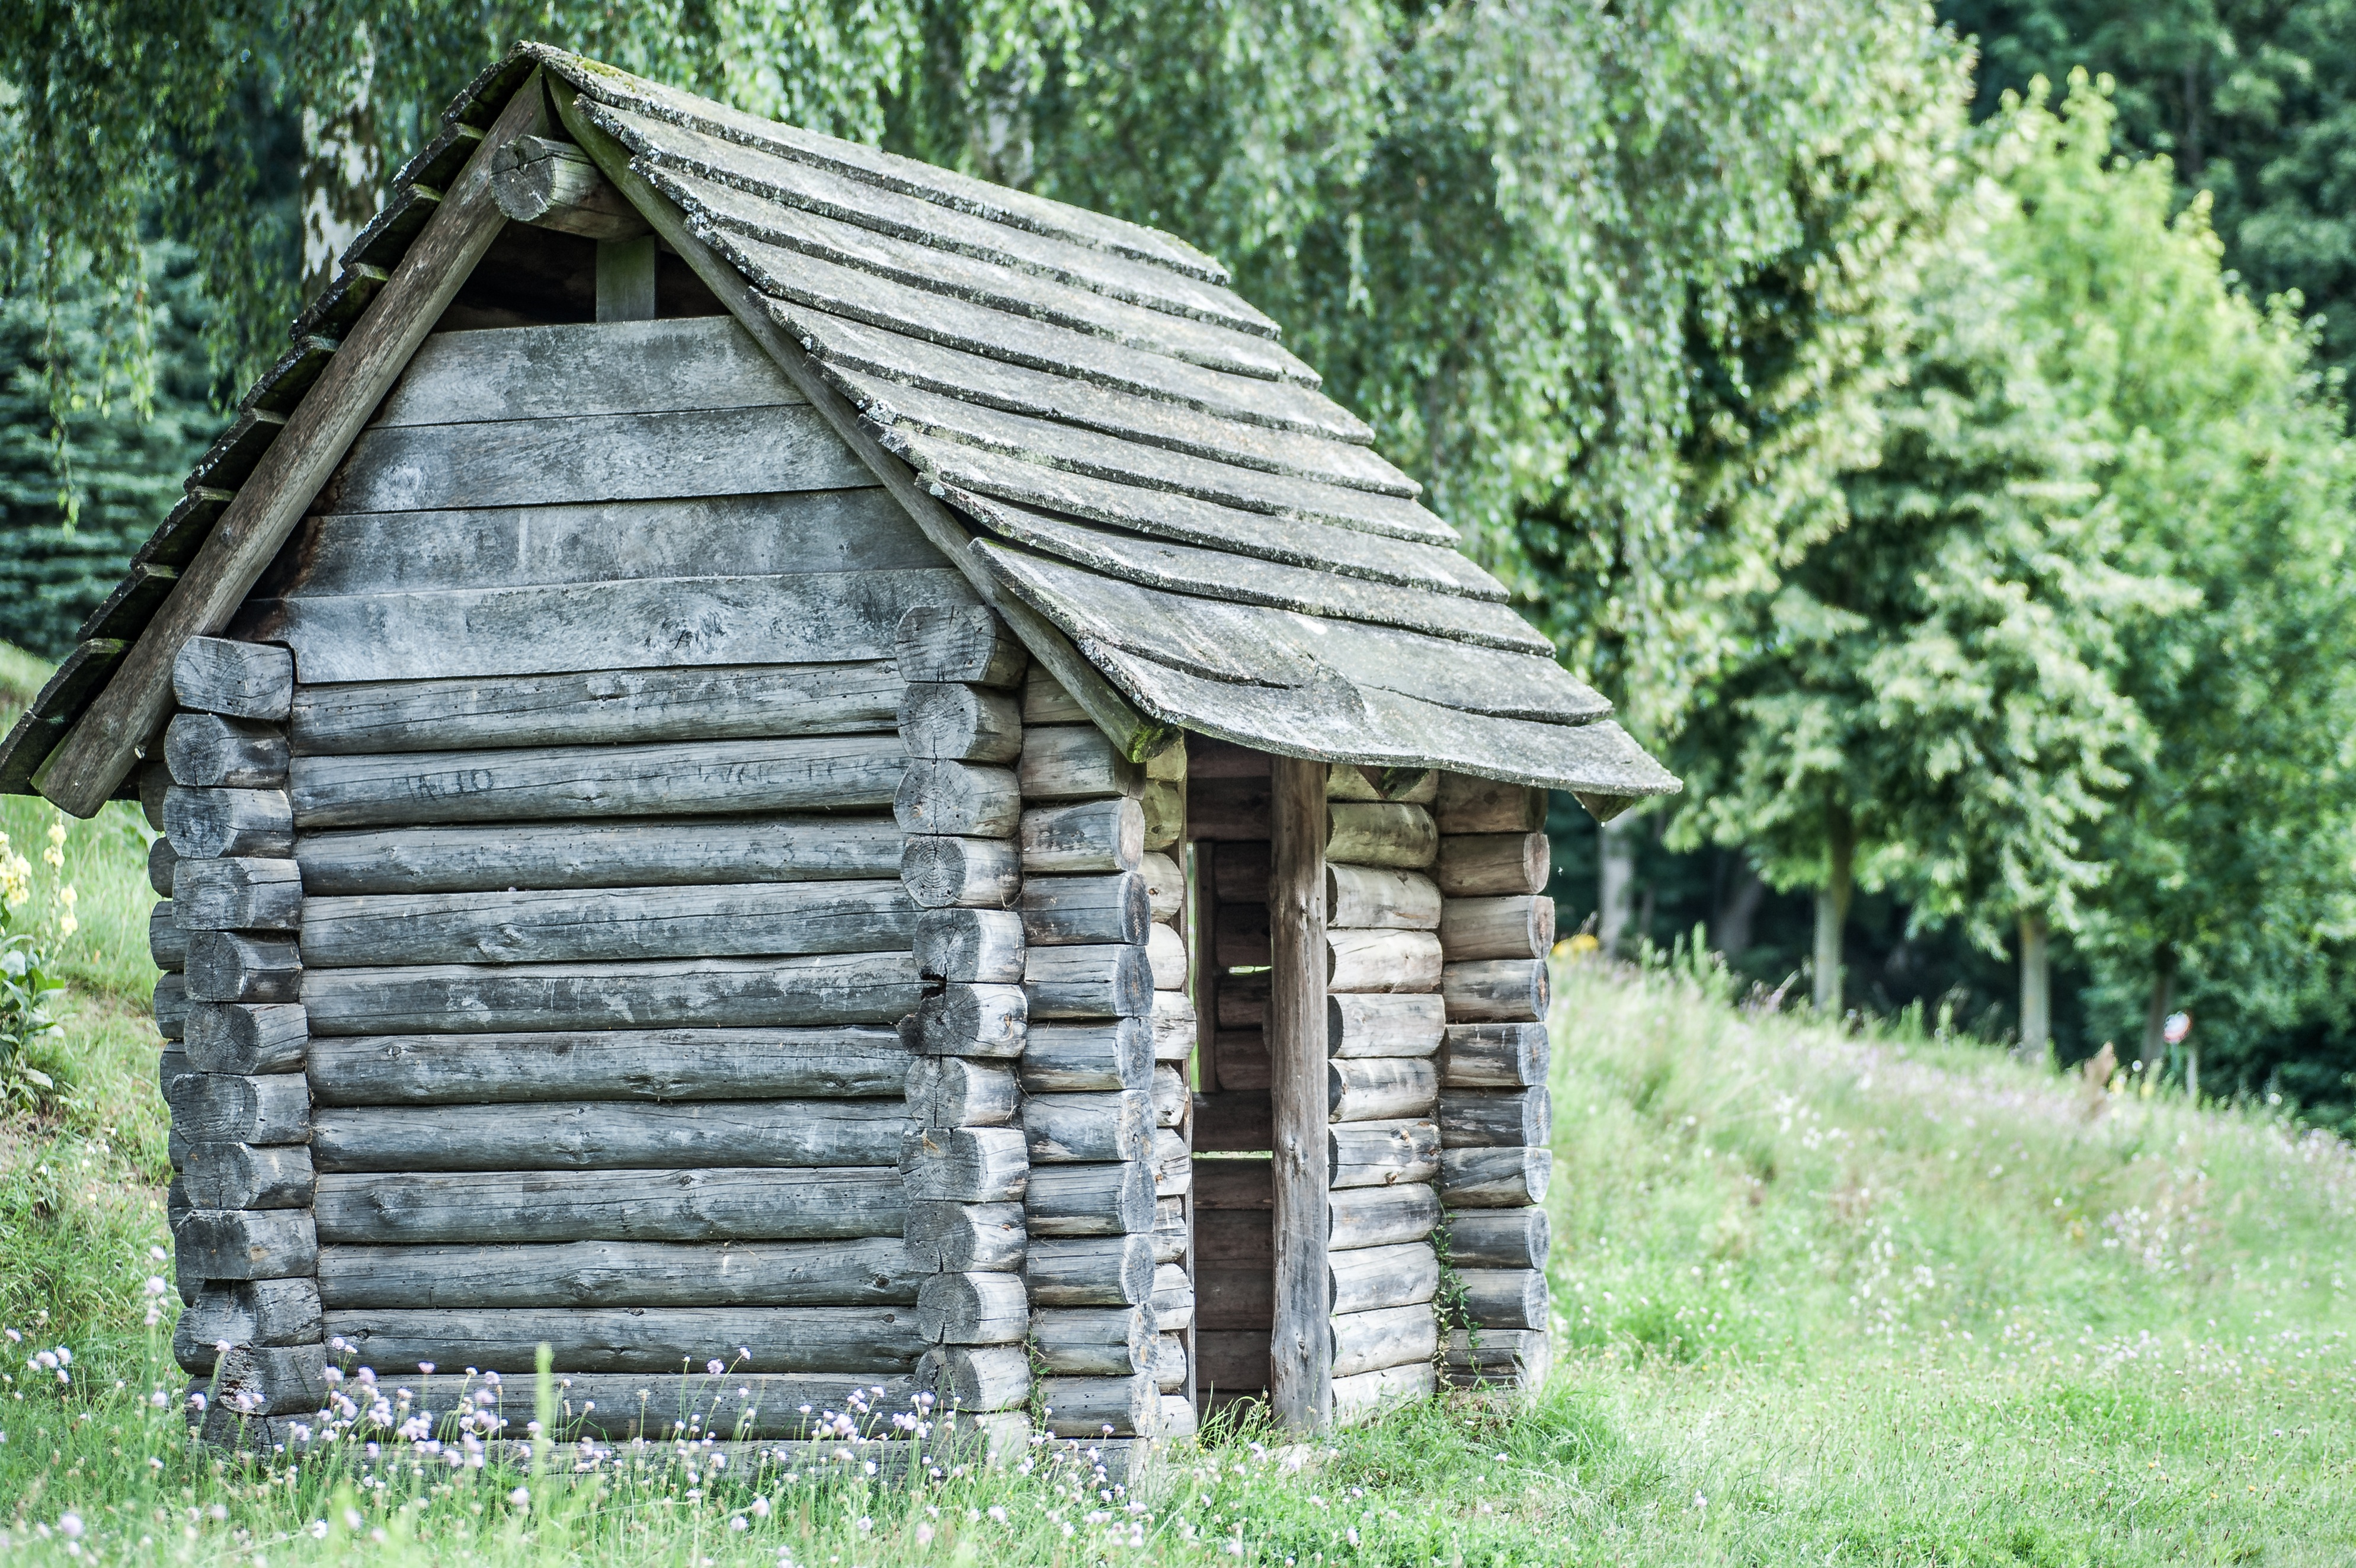 Free stock photo of wood, building, forest, trees